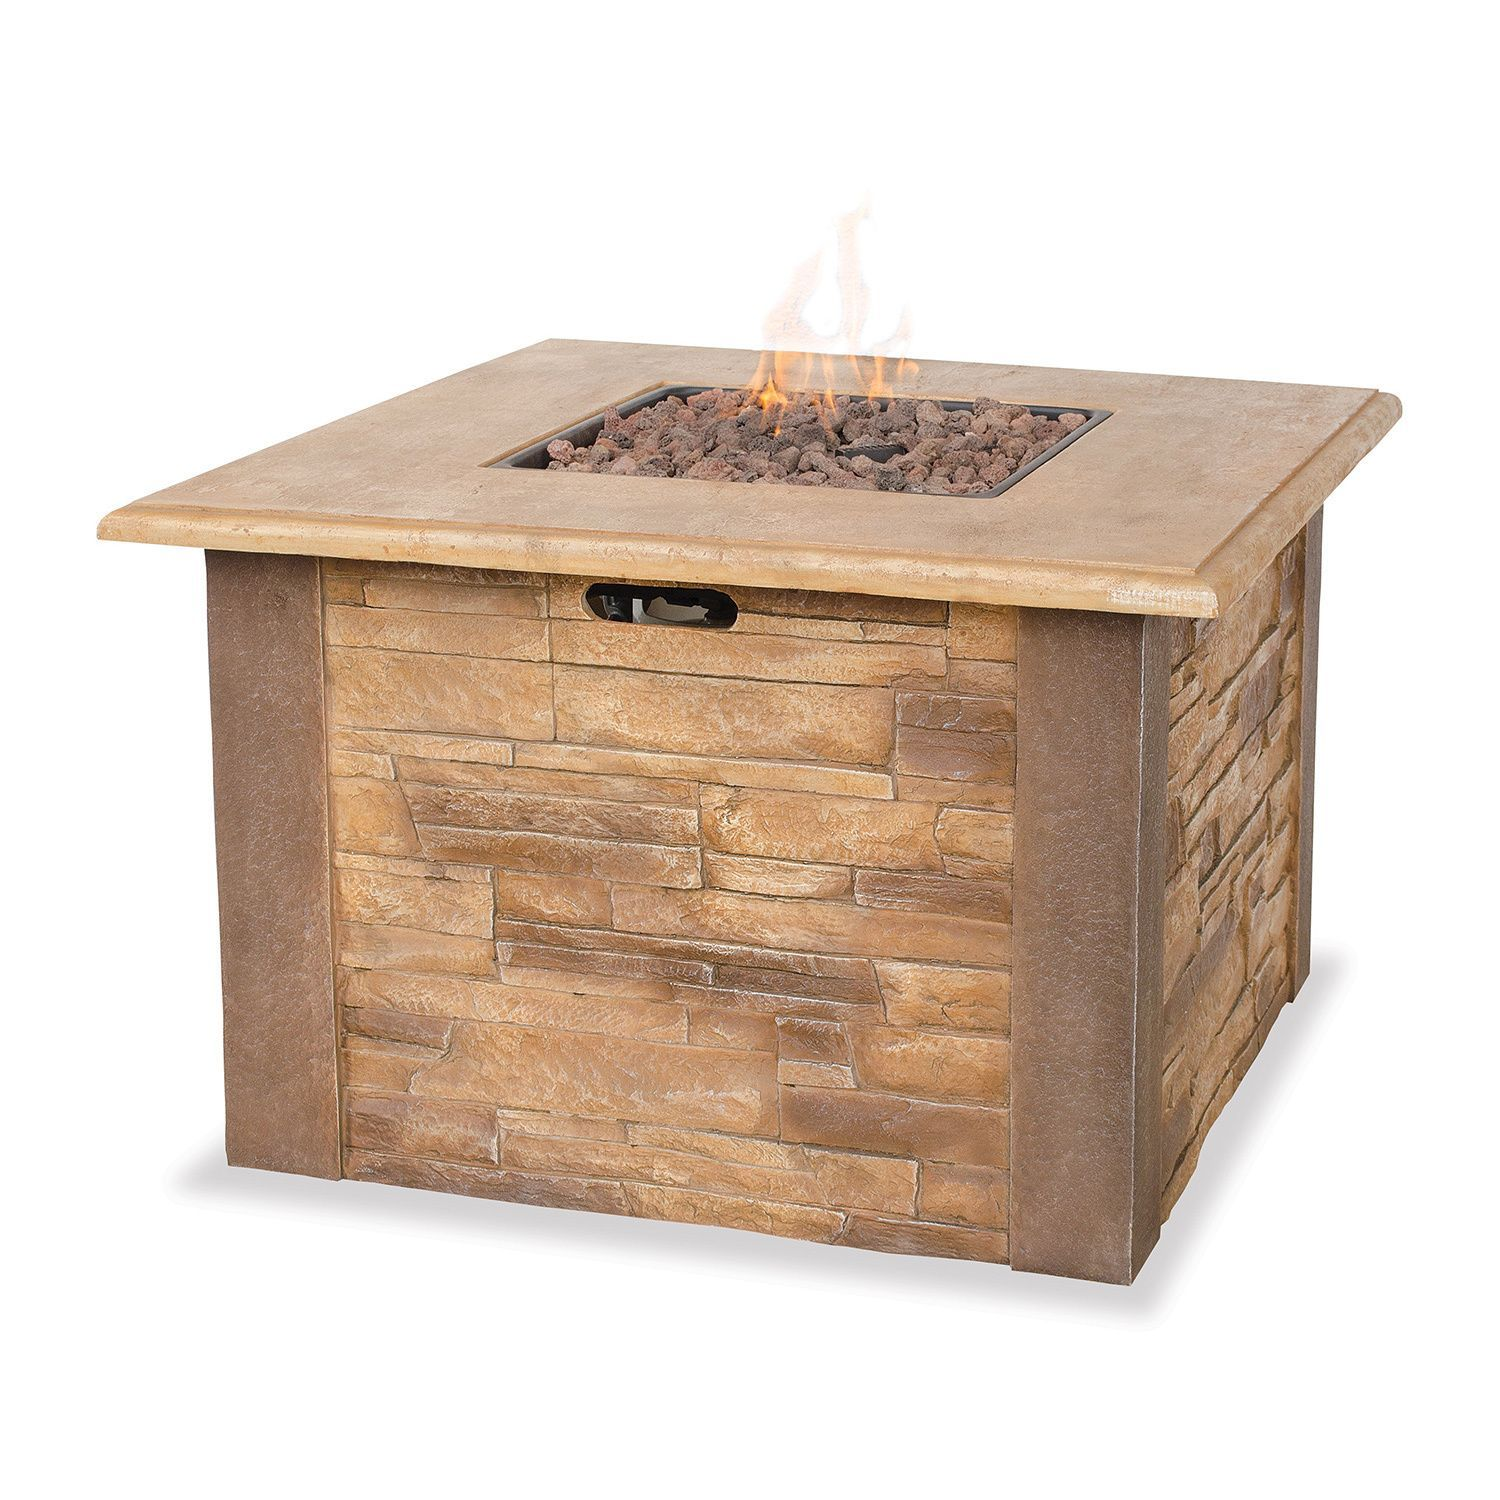 Blue rhino uf stacked stone lp gas fire pit brown outdoor décor